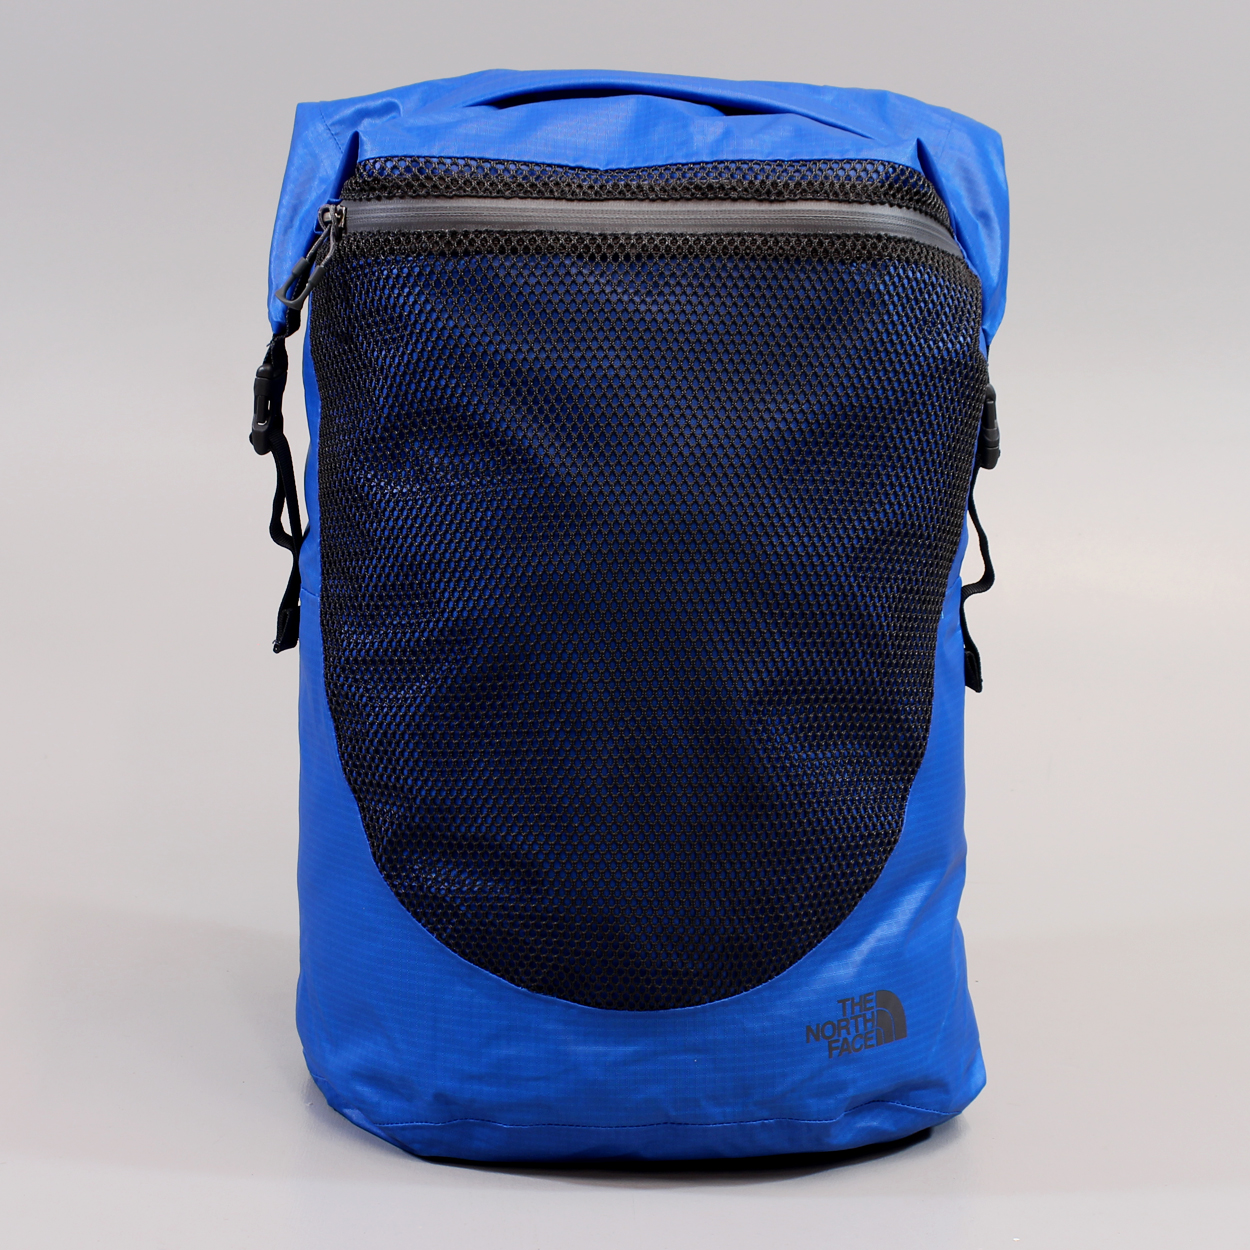 The North Face Waterproof Daypack Blue Mesh Roll Top Outside Bag £45.00 cf735e78473e